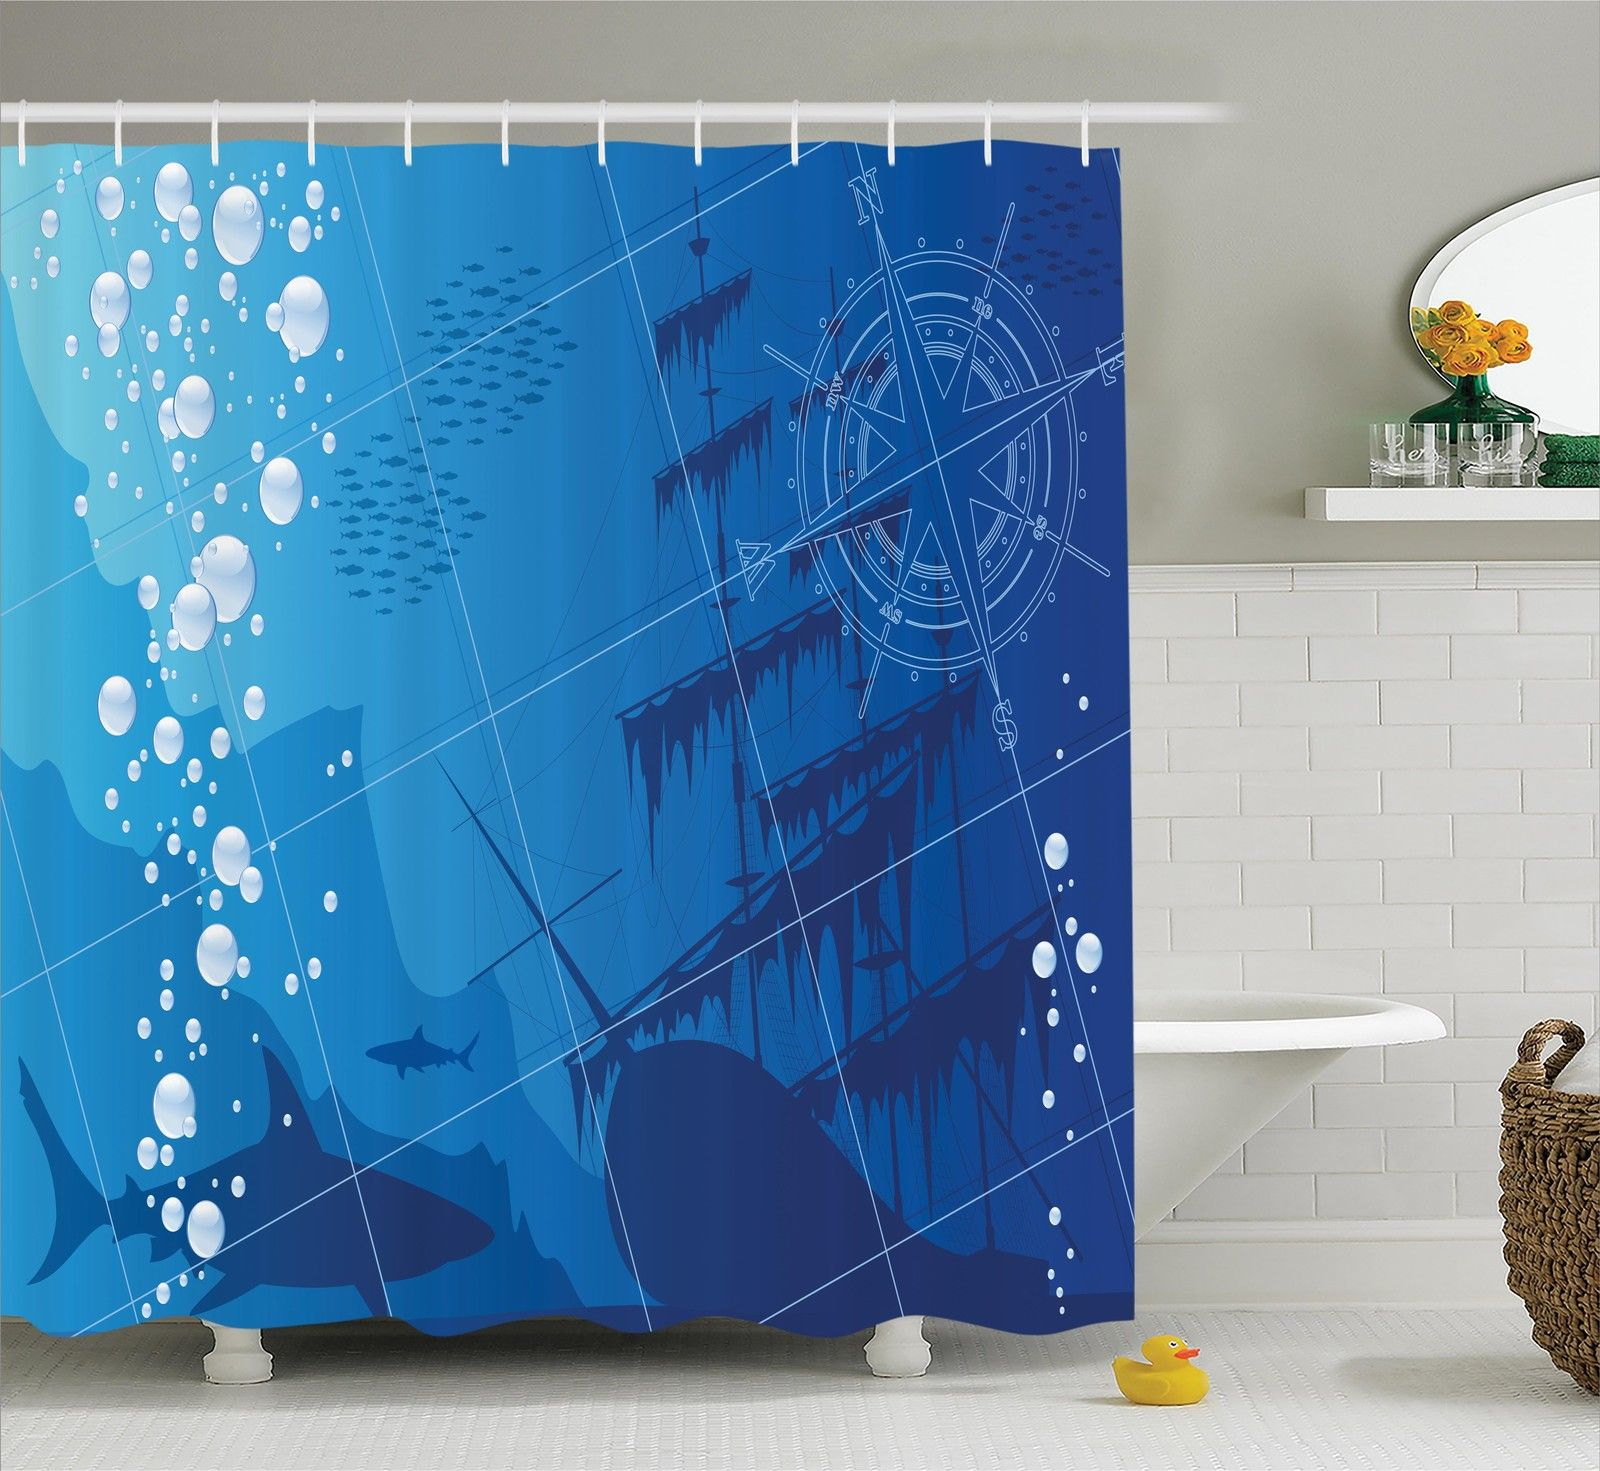 Polyester Fabric Bathroom Shower Curtain Set With Hooks